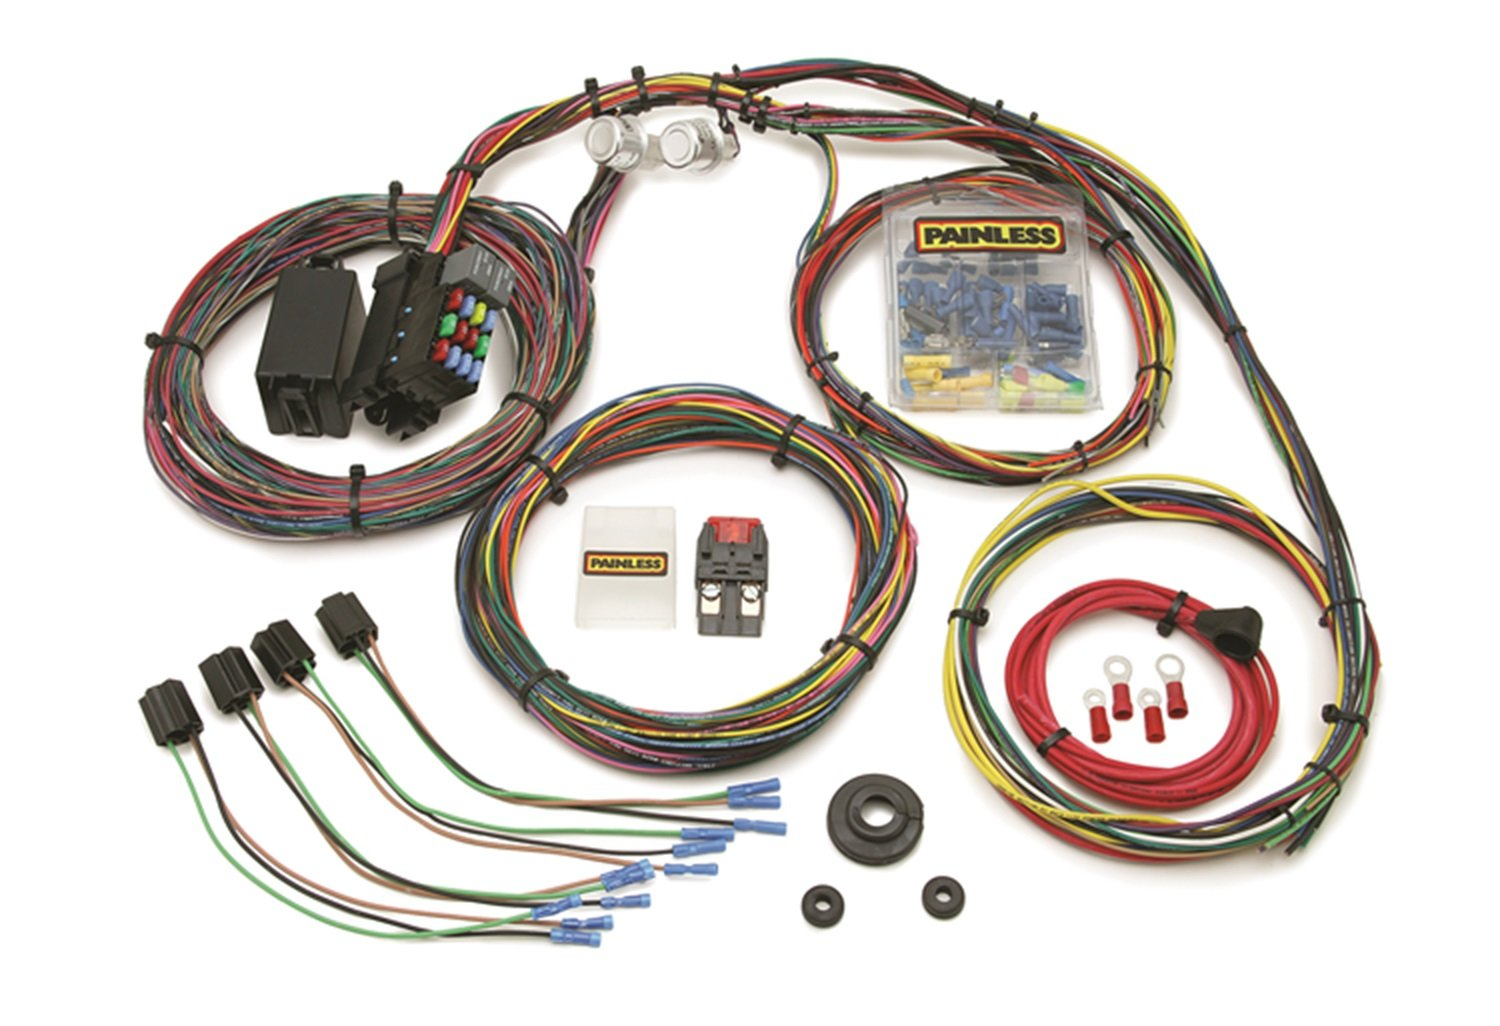 71gWOH5D5zL._SL1500_ amazon com painless 10127 automotive painless wiring harness rebate at nearapp.co